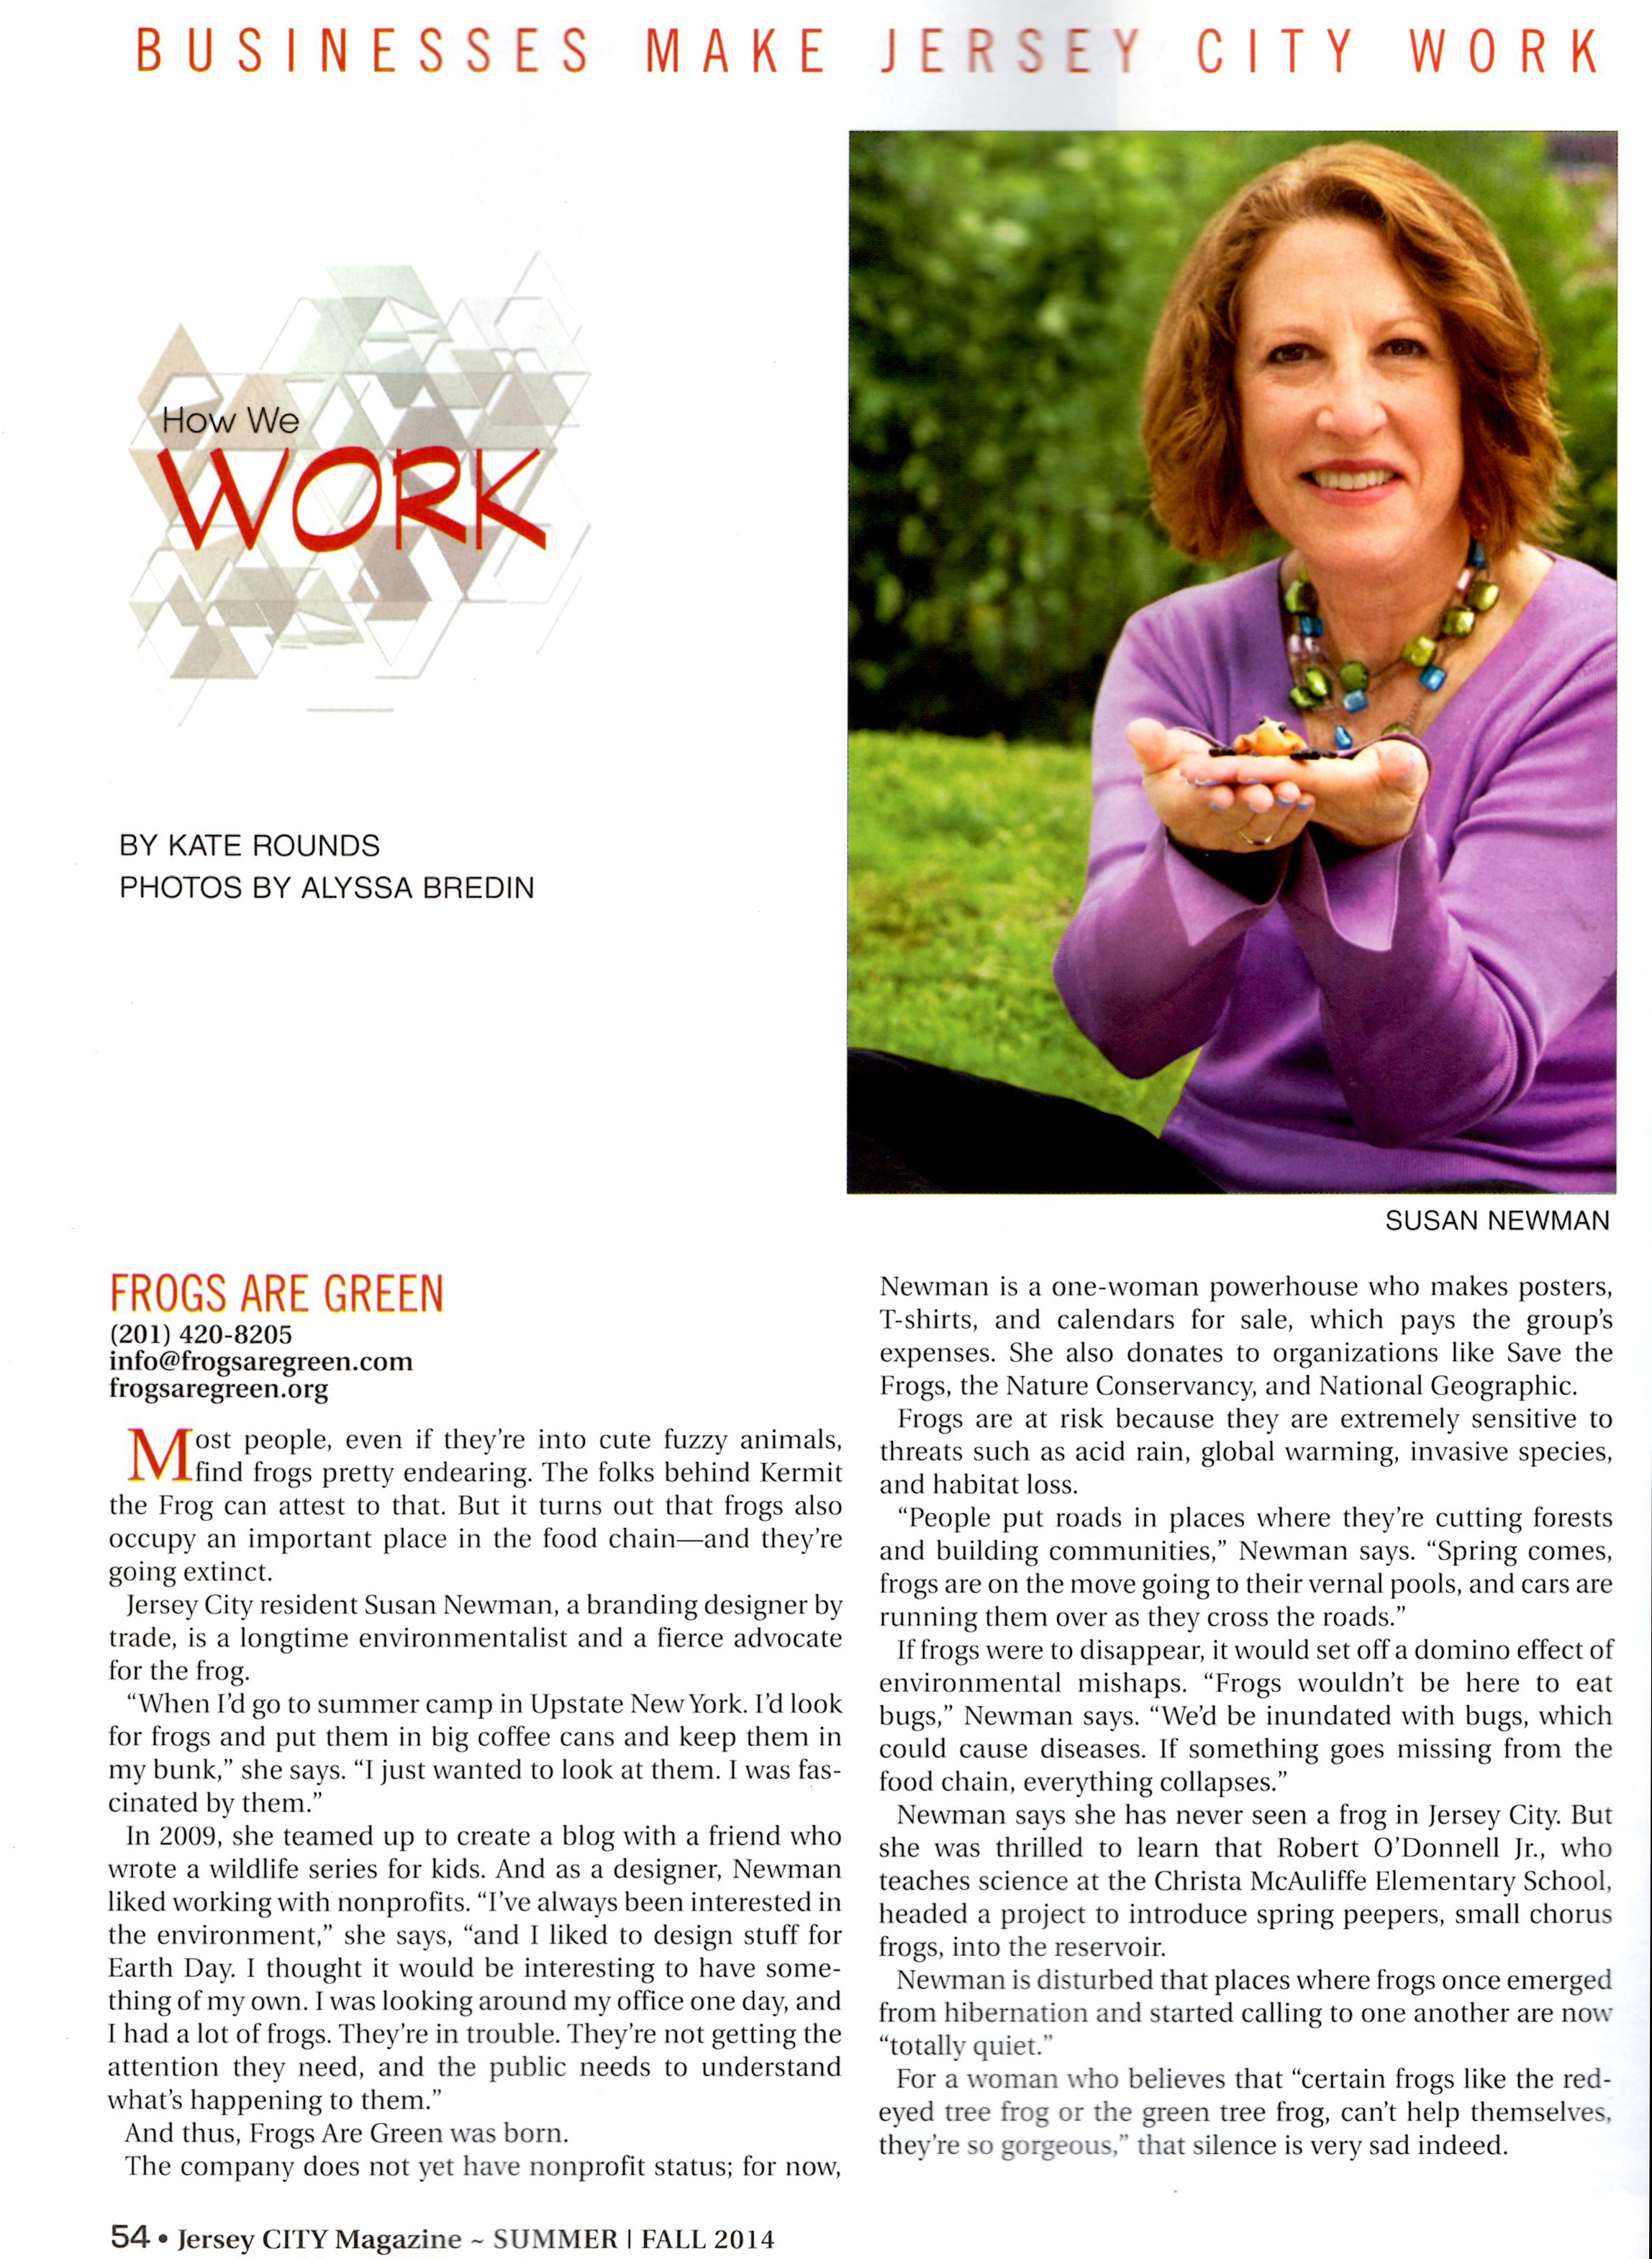 Susan Newman, brand visibility designer and founder of Frogs Are Green interviewed by Jersey City Magazine